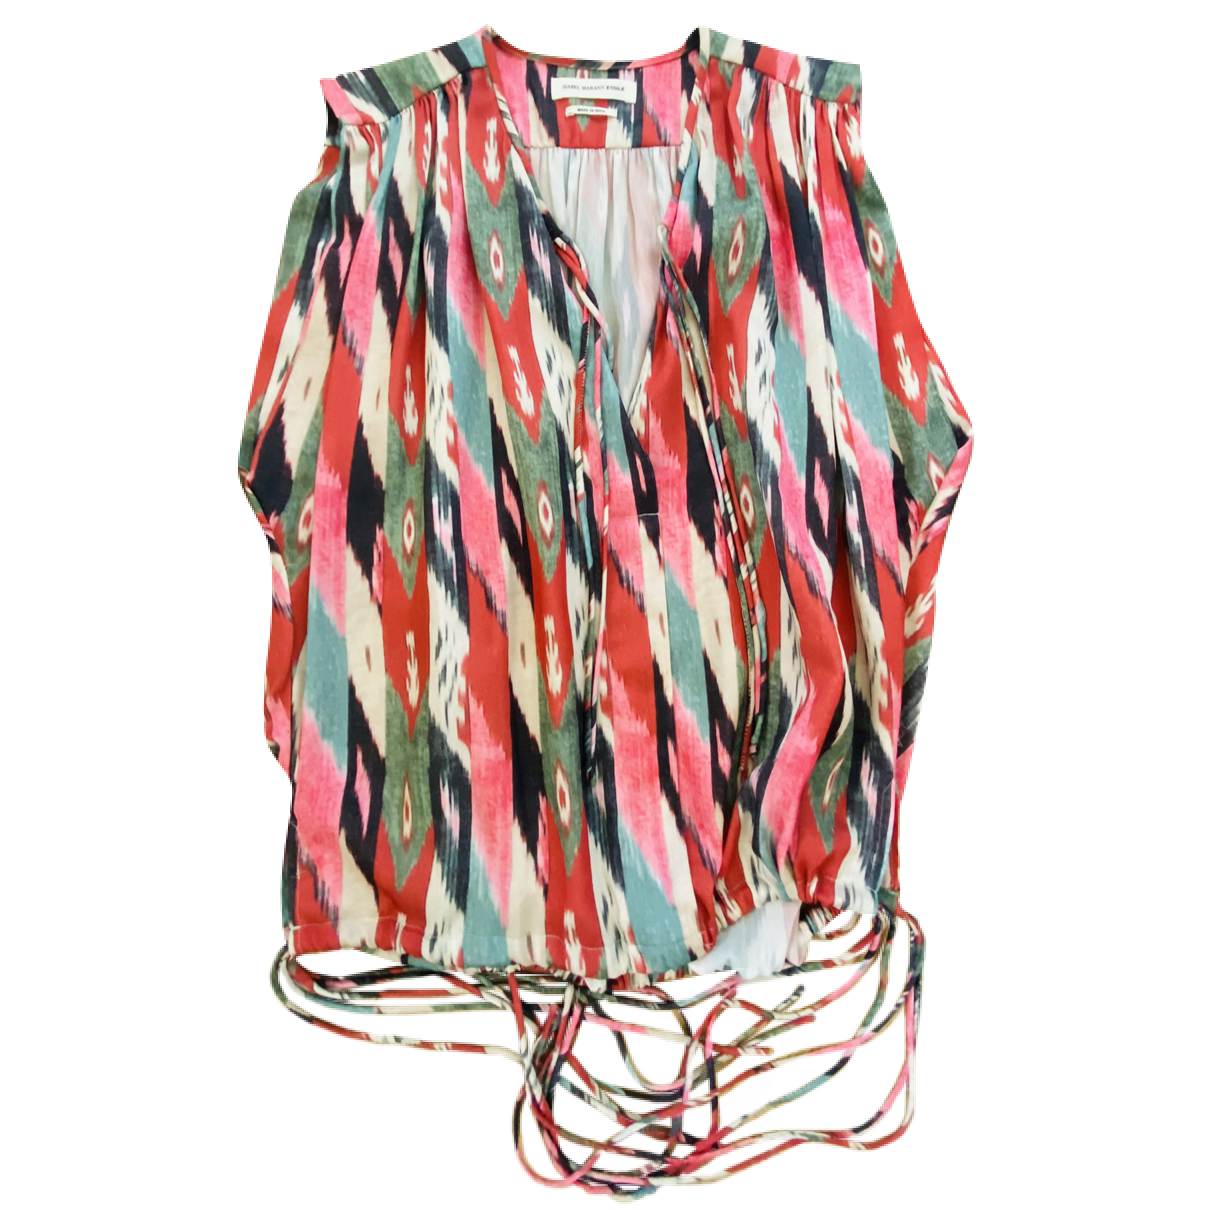 Isabel Marant Etoile N Multicolour  top for Women 38 FR